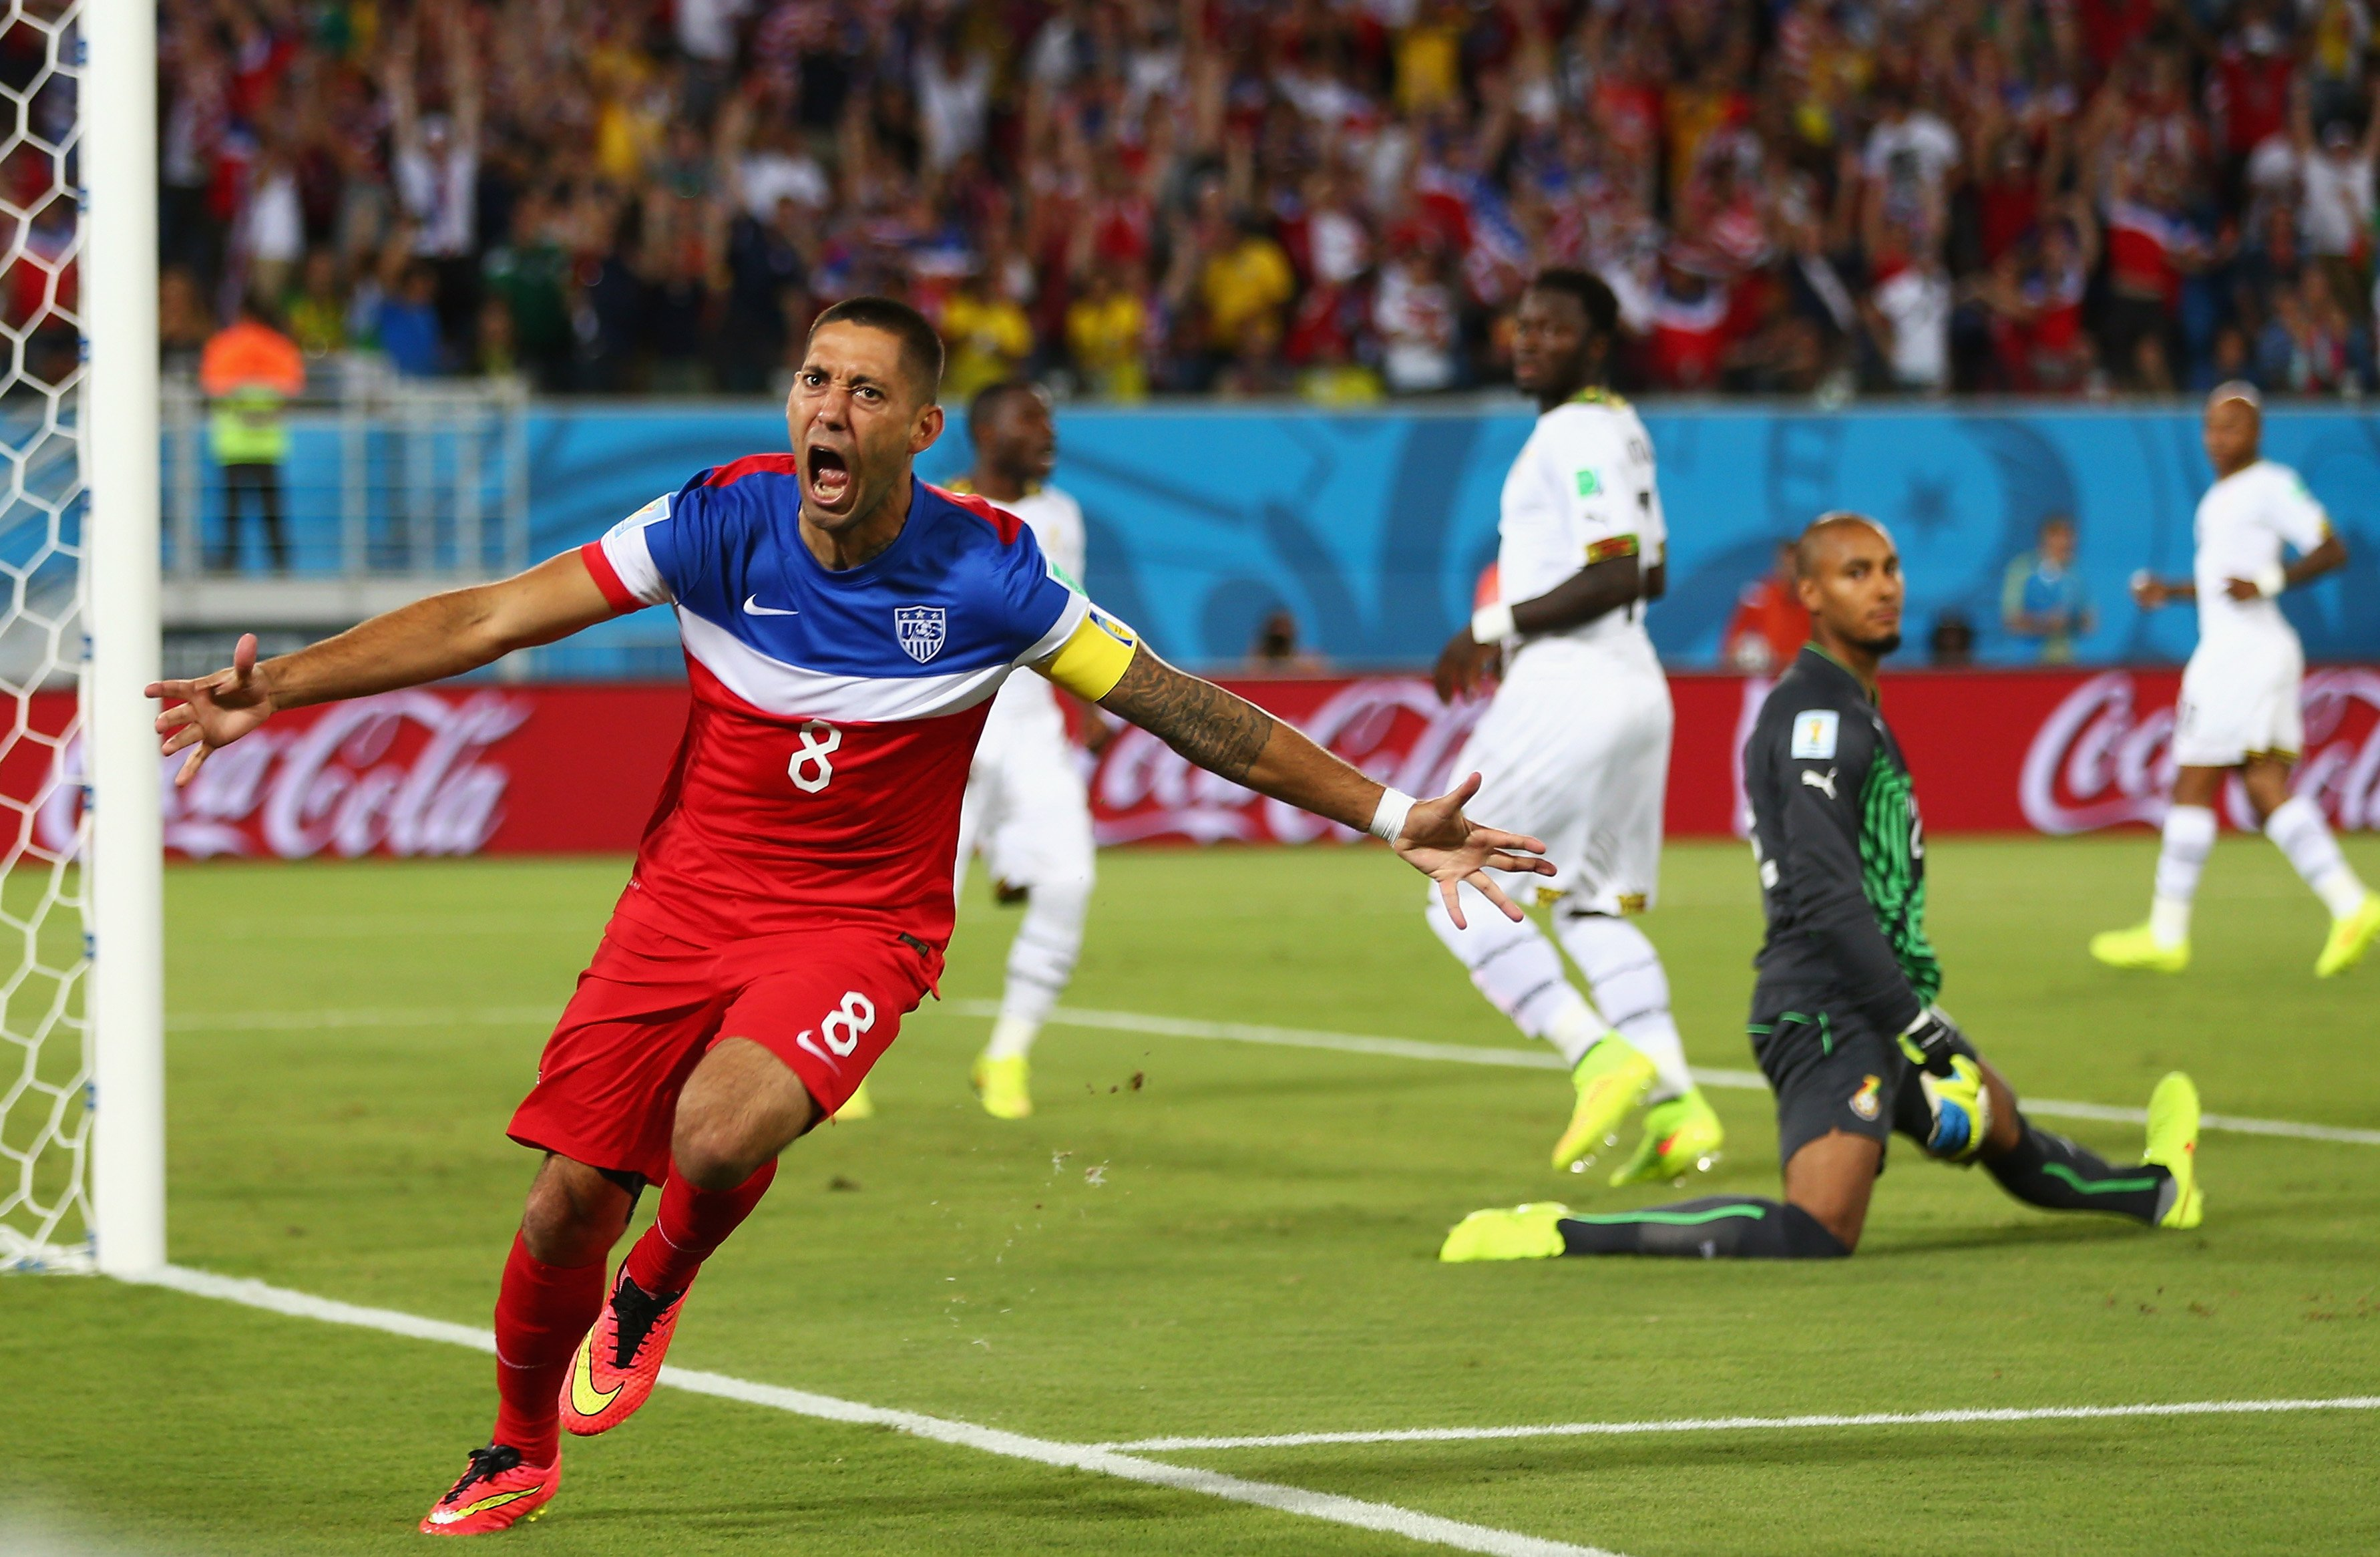 Clint Dempsey of the United States reacts after scoring his team's first goal past goalkeeper Adam Kwarasey of Ghana during the 2014 FIFA World Cup Brazil Group G match between Ghana and the United States at Estadio das Dunas on June 16, 2014 in Natal, Brazil.